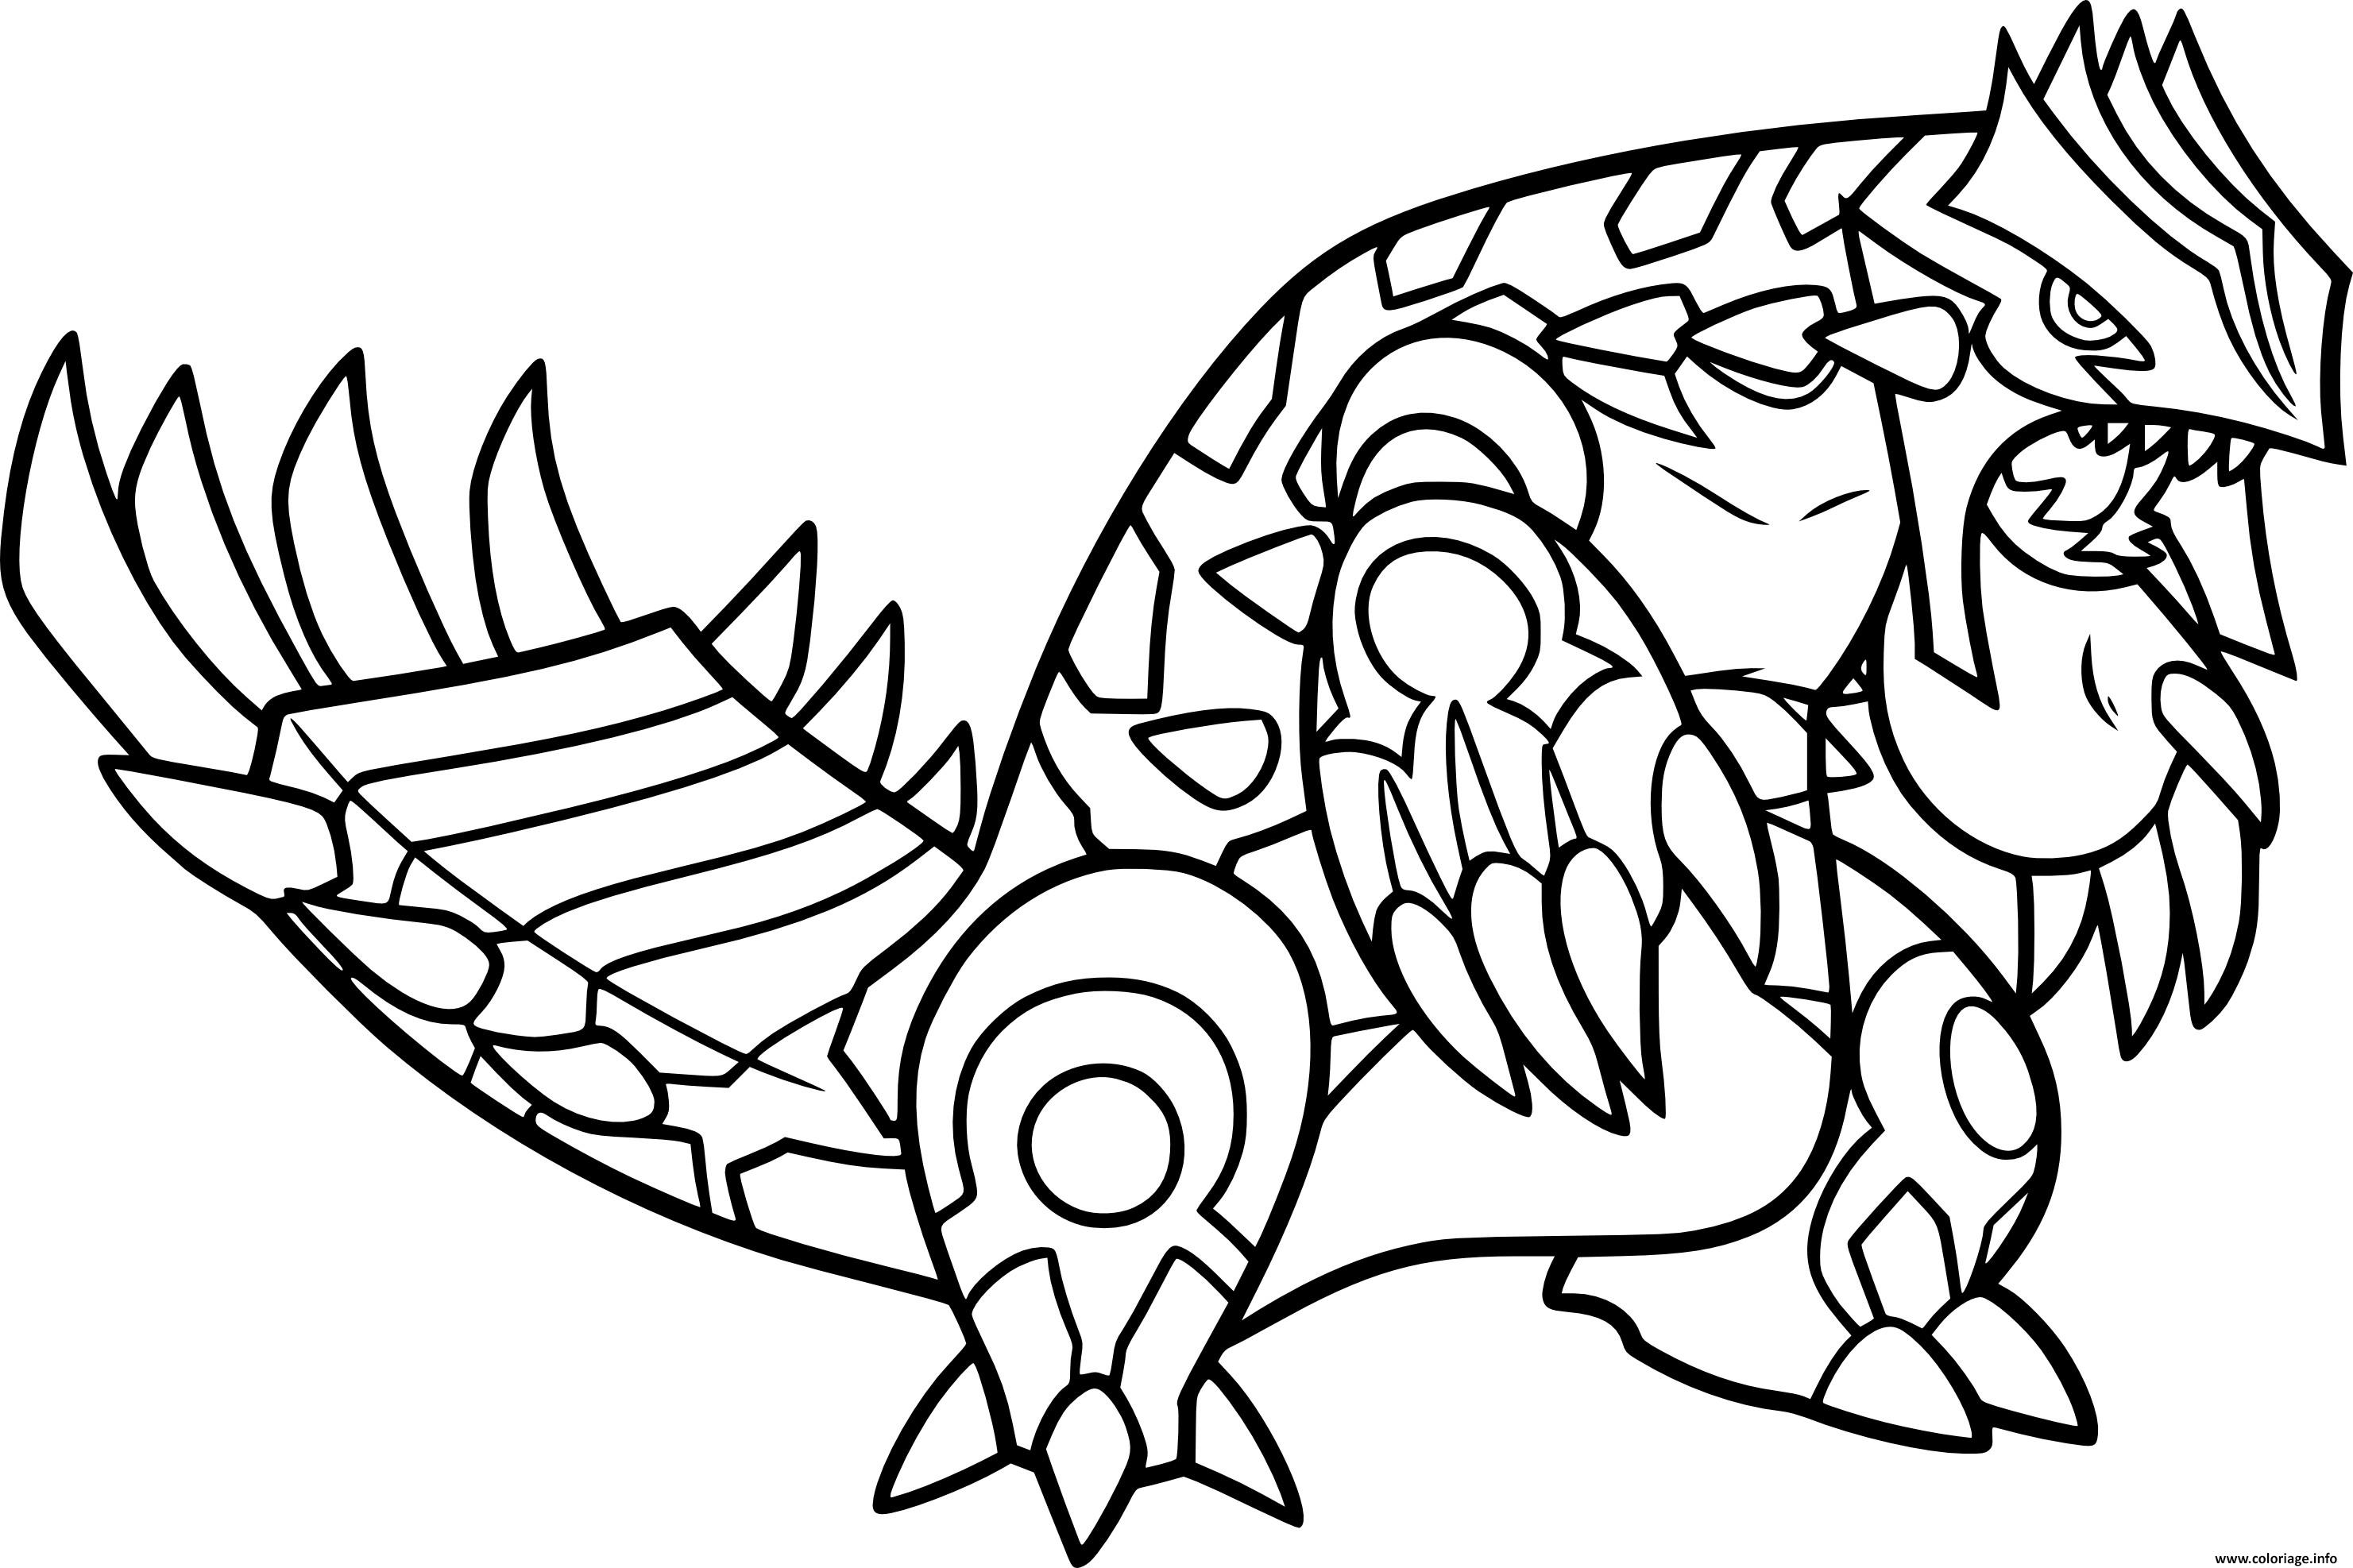 Coloriage pokemon legendaire - Coloriage de pokemon a imprimer ...